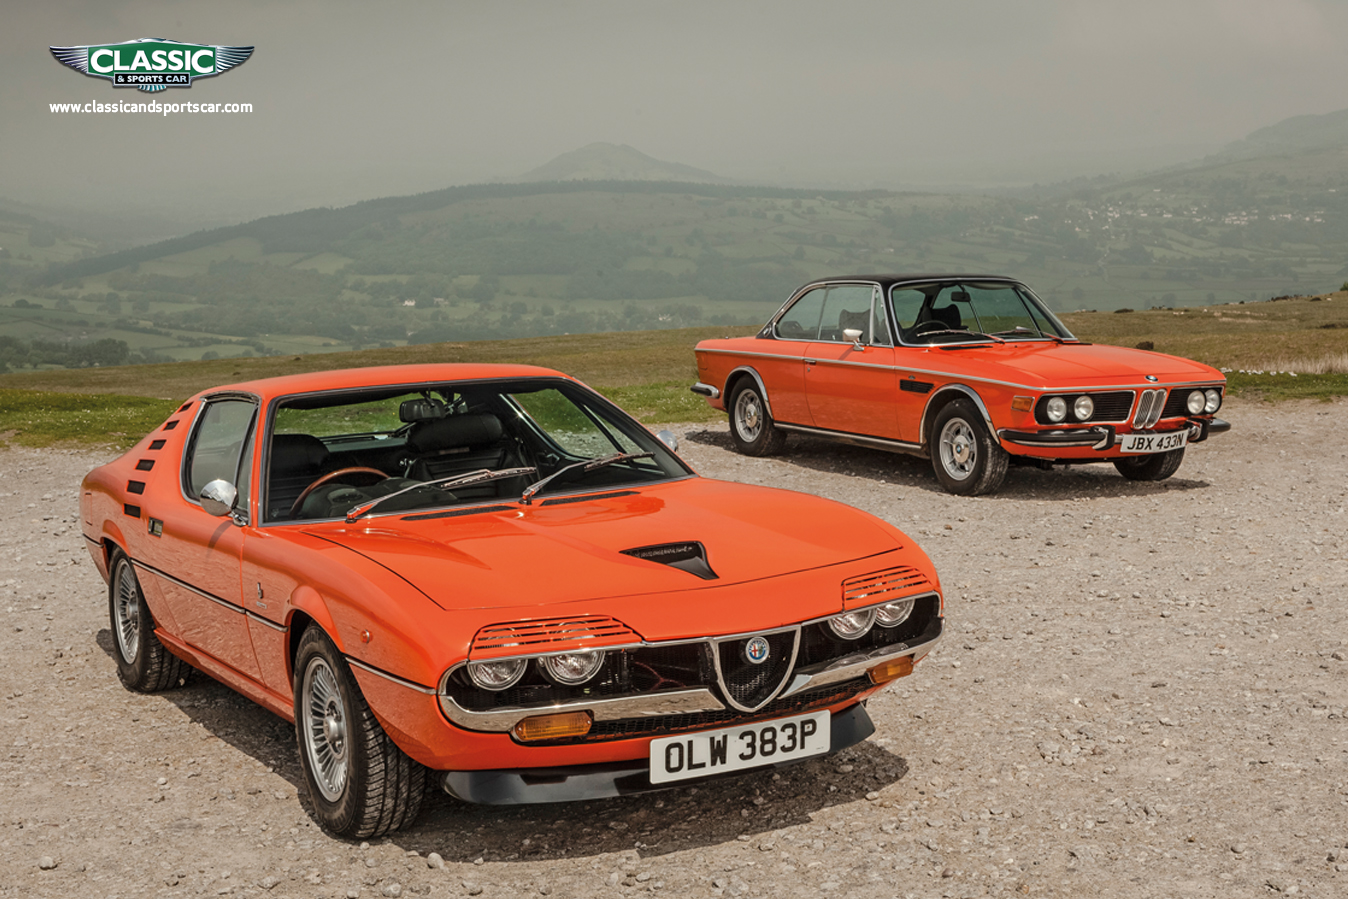 Classic_and_Sports_Car_desktop_wallpapers_BMW_3.0_CSi_vs_Alfa_Romeo_Montreal.jpg